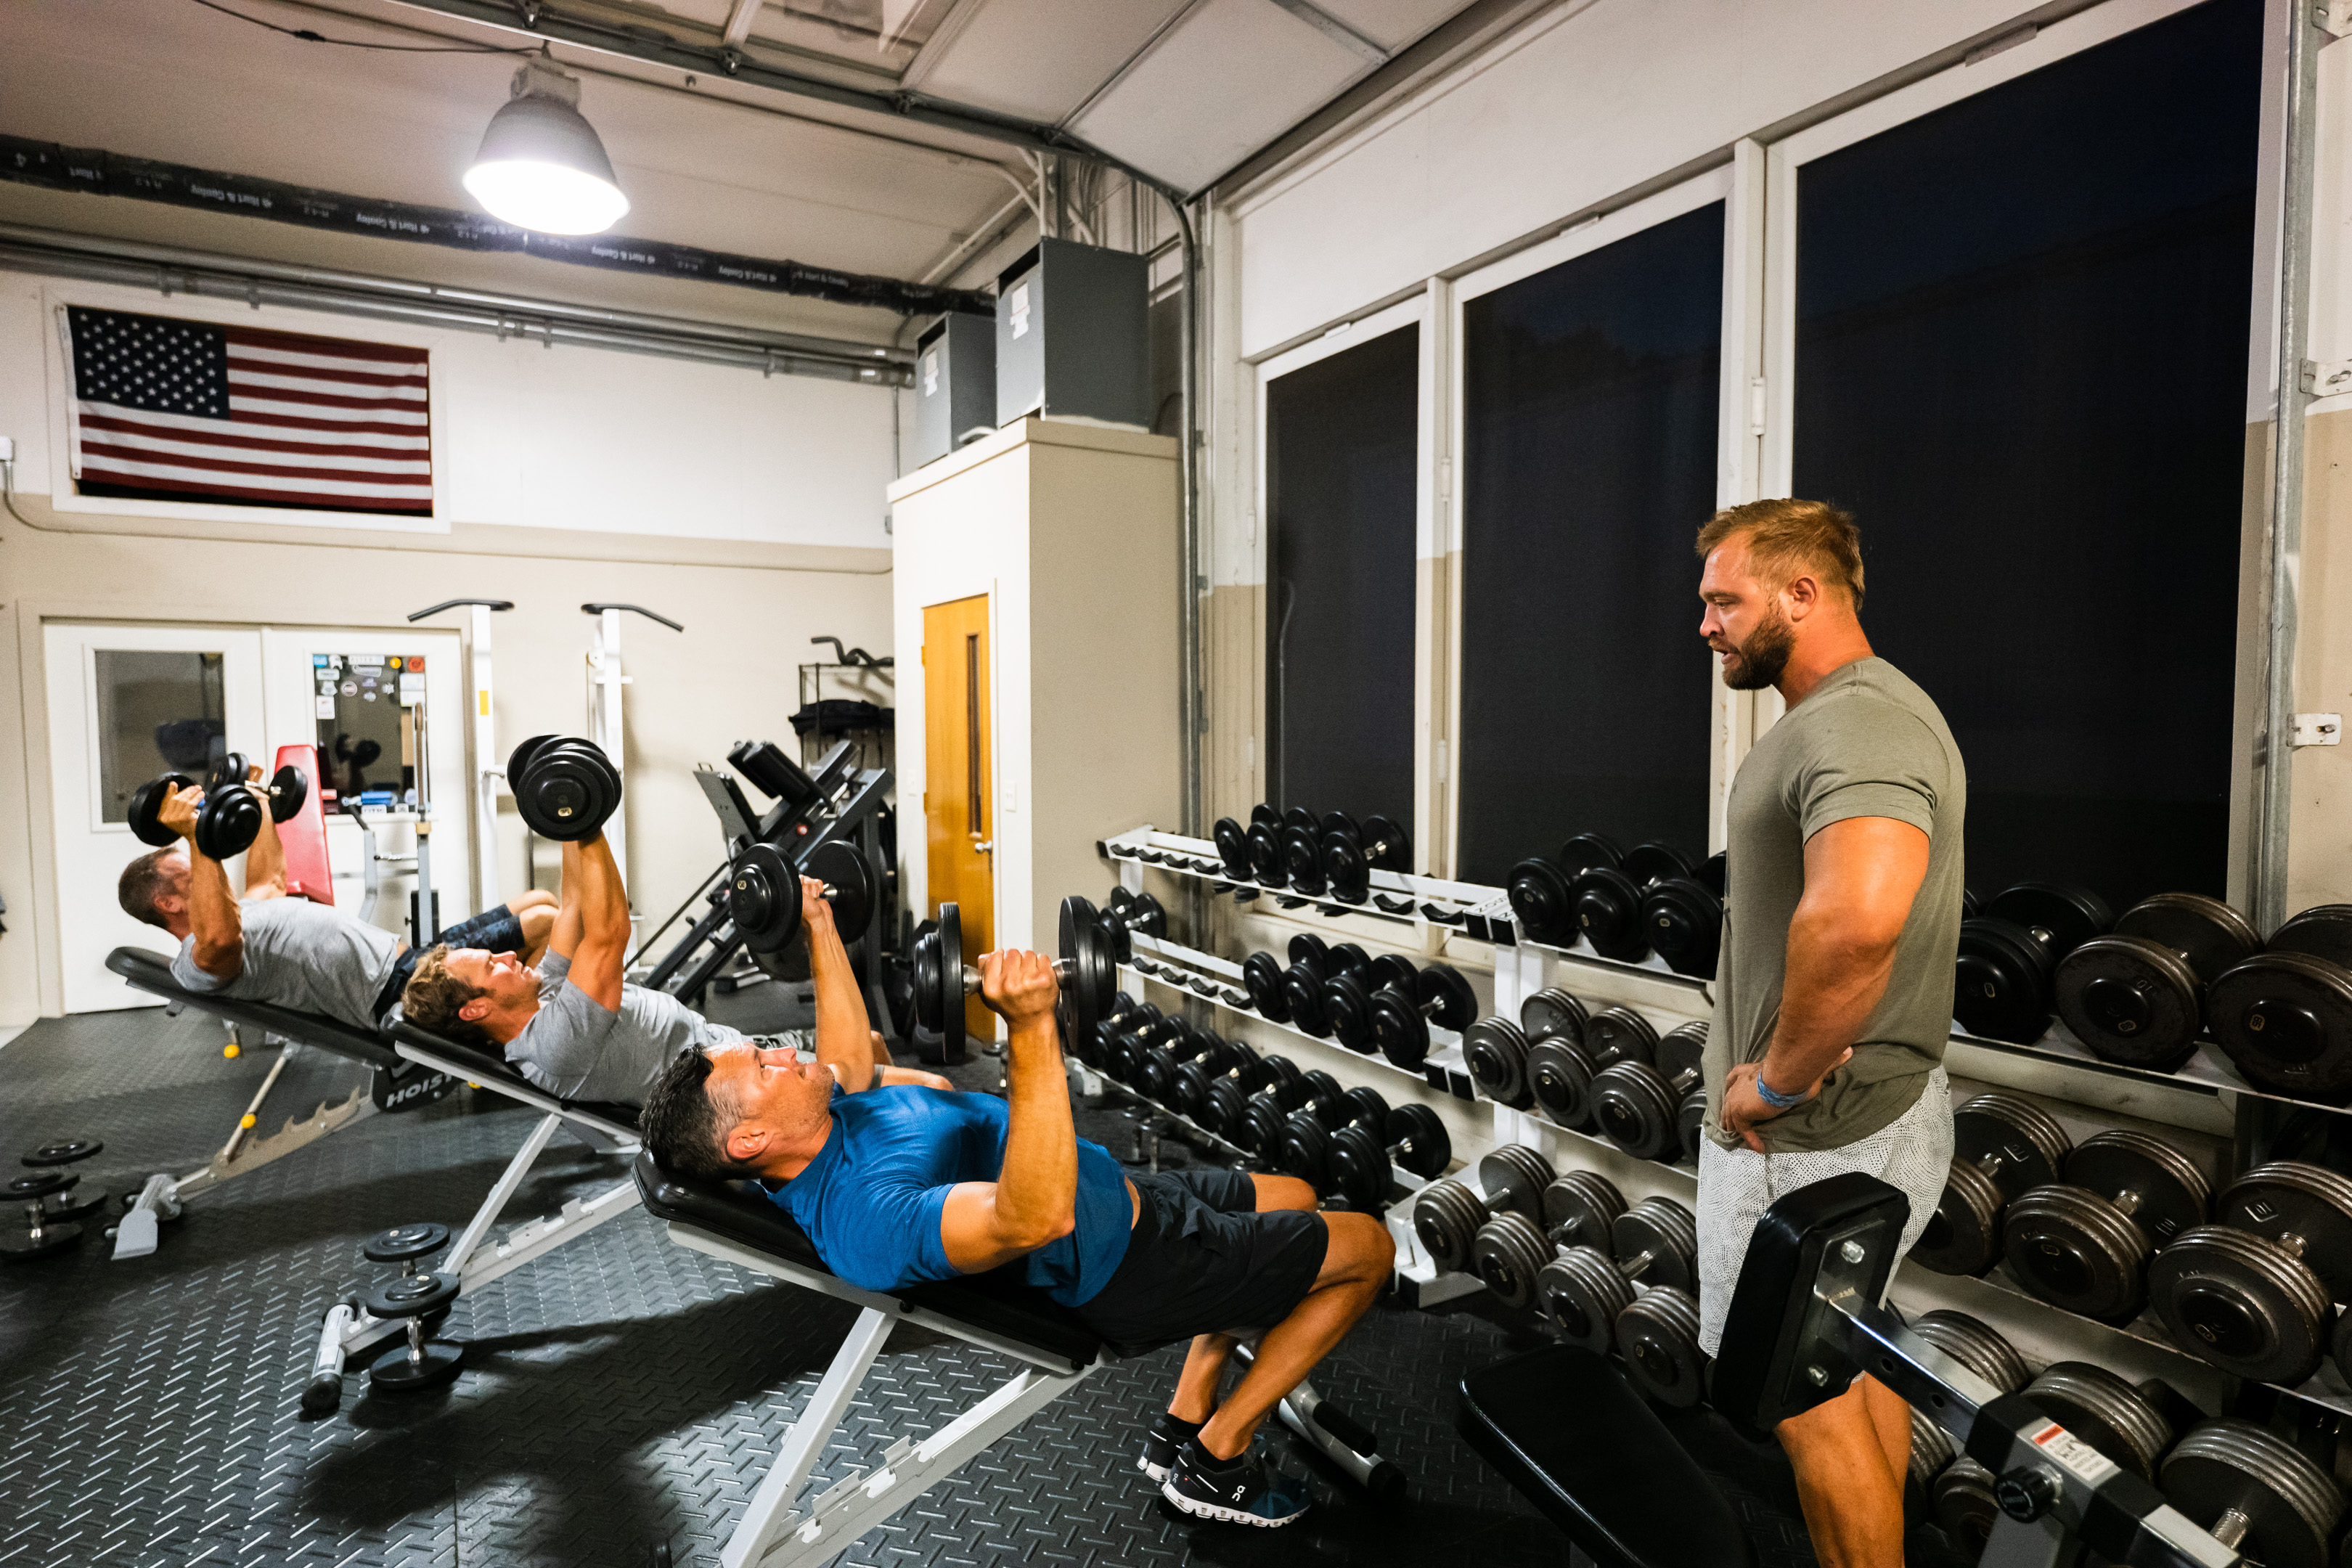 Prevail Grand Rapids personal training and gym located in Ada, Michigan.